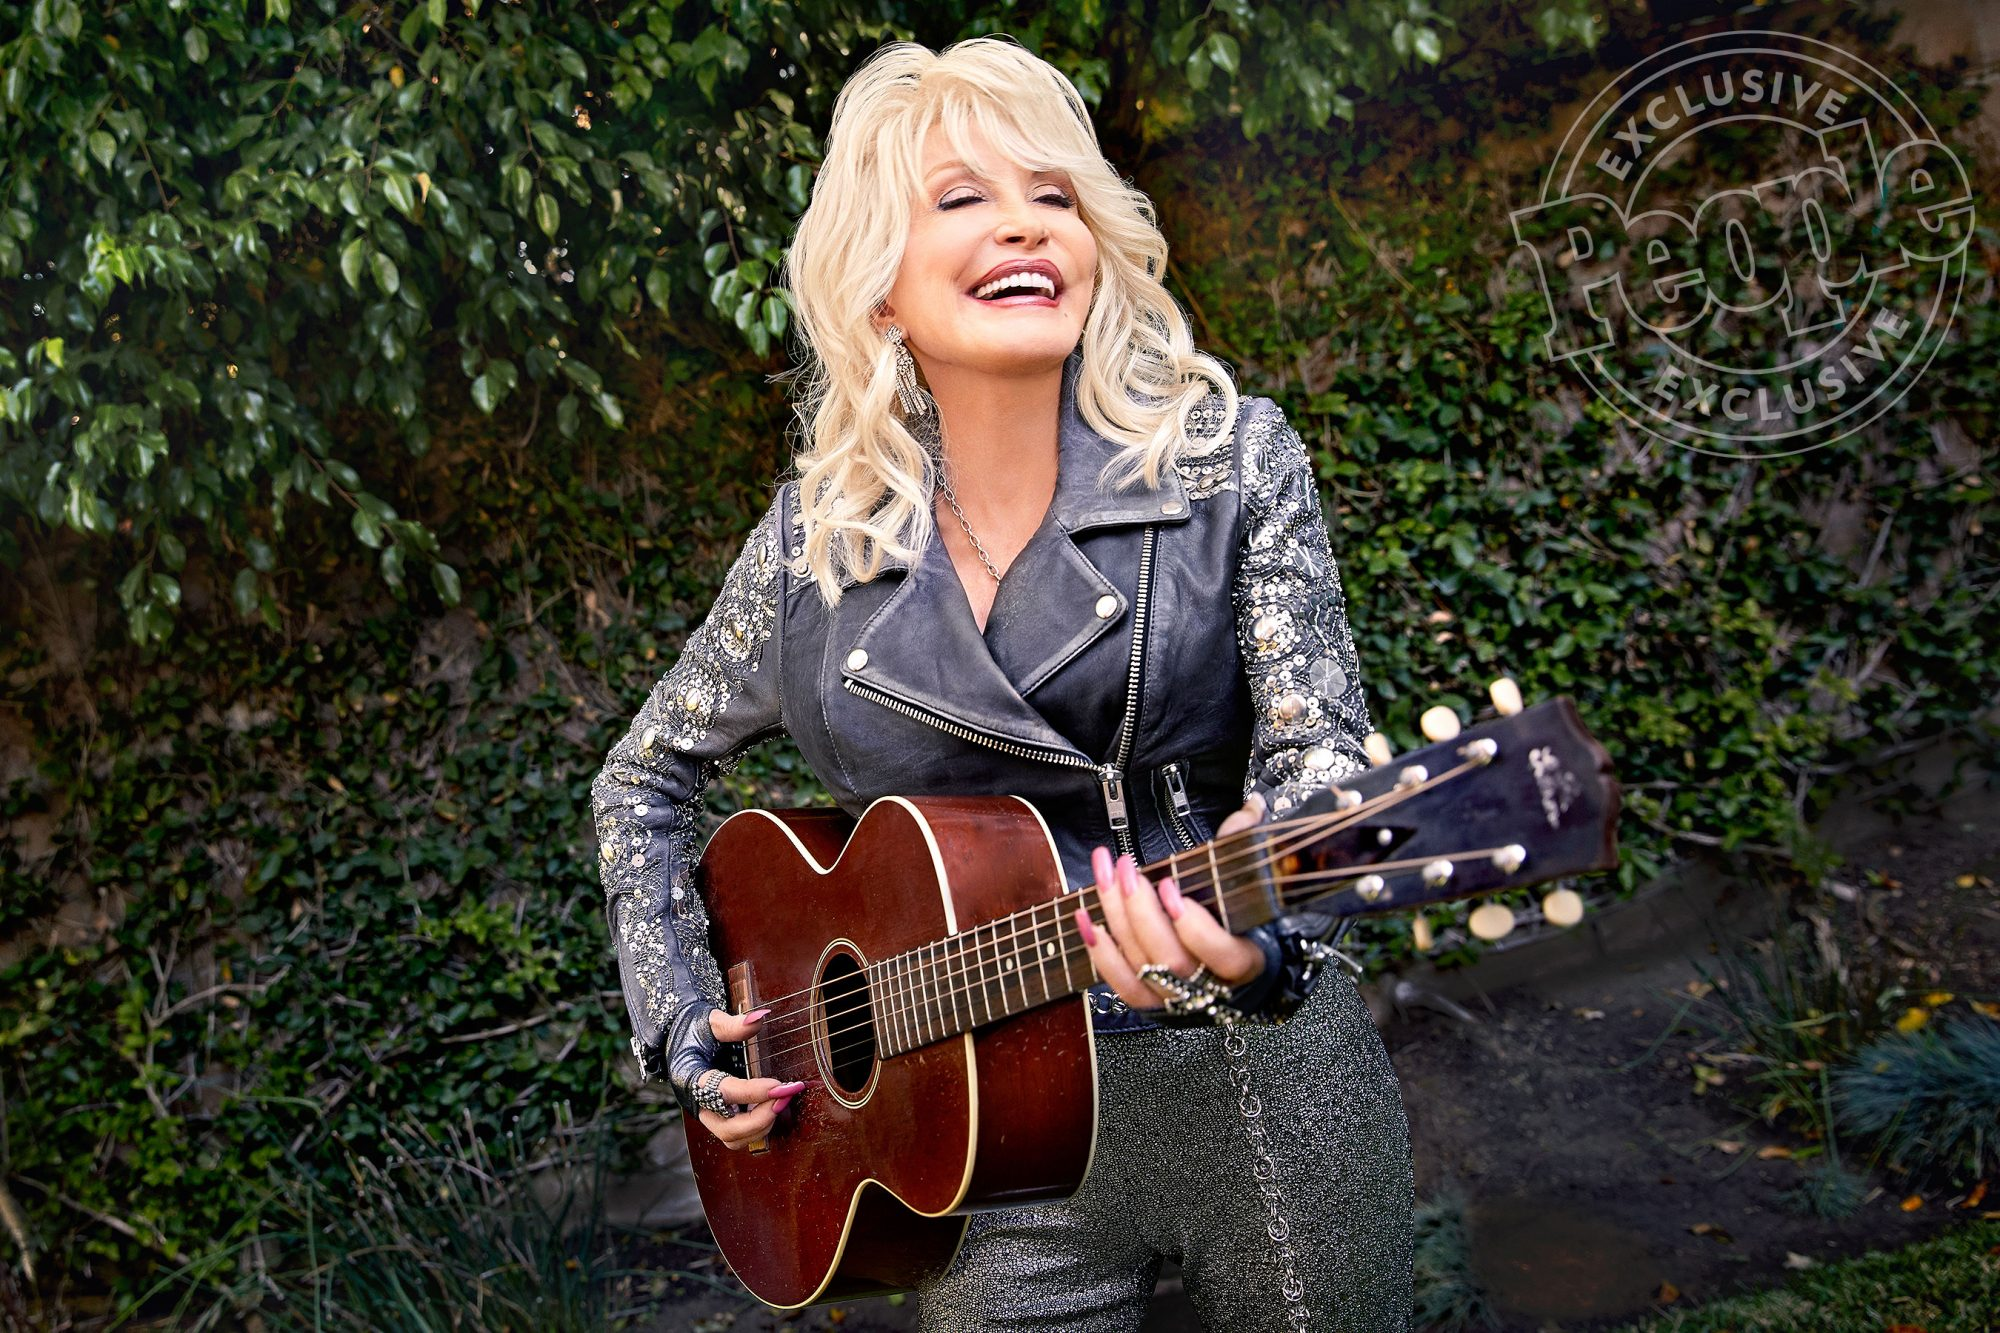 ROLLOUT Dolly Parton RetouchedCredit: Art Streiber